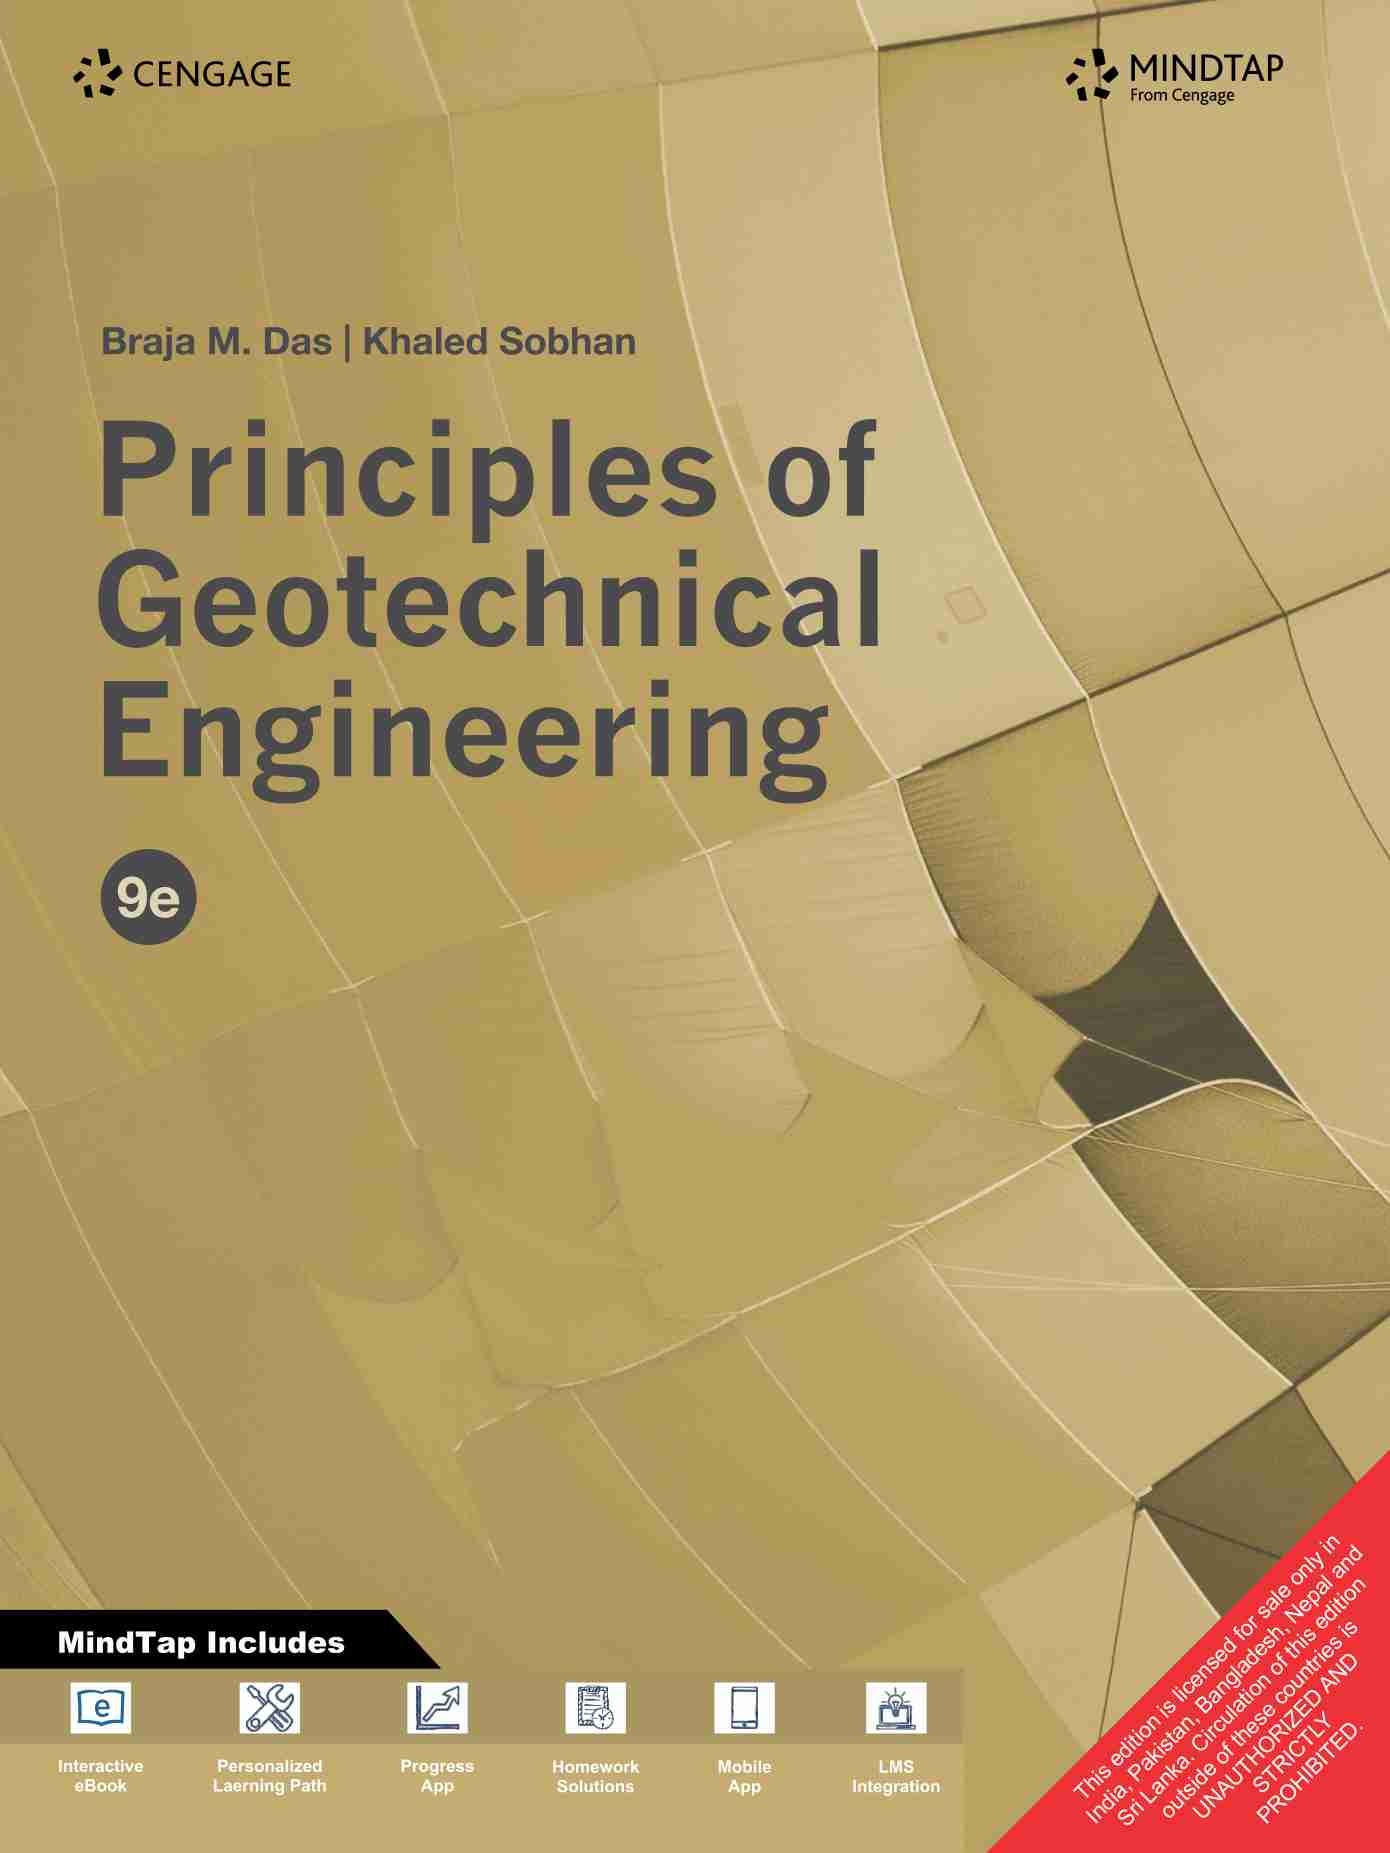 Principles of Geotechnical Engineering with MindTap